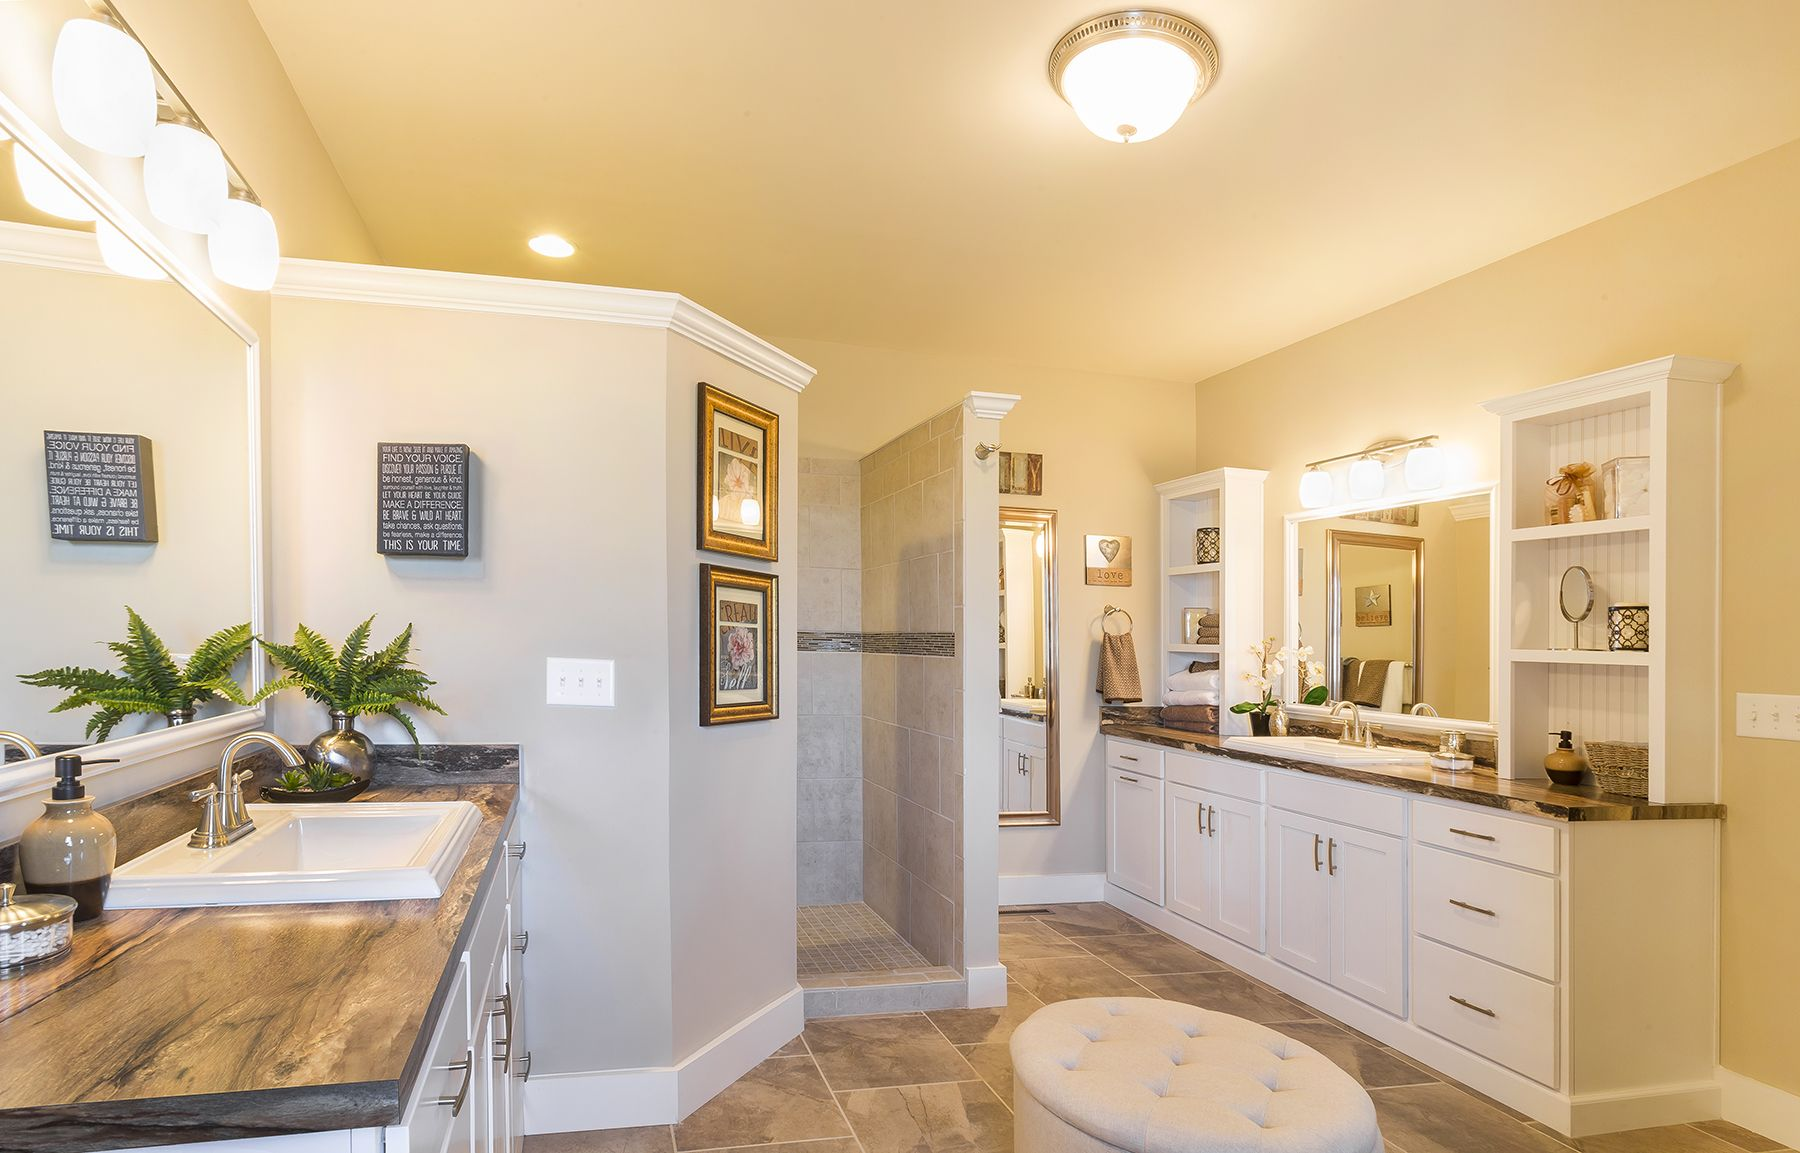 His And Her Sinks On Opposite Sides Of The Master Bathroom No